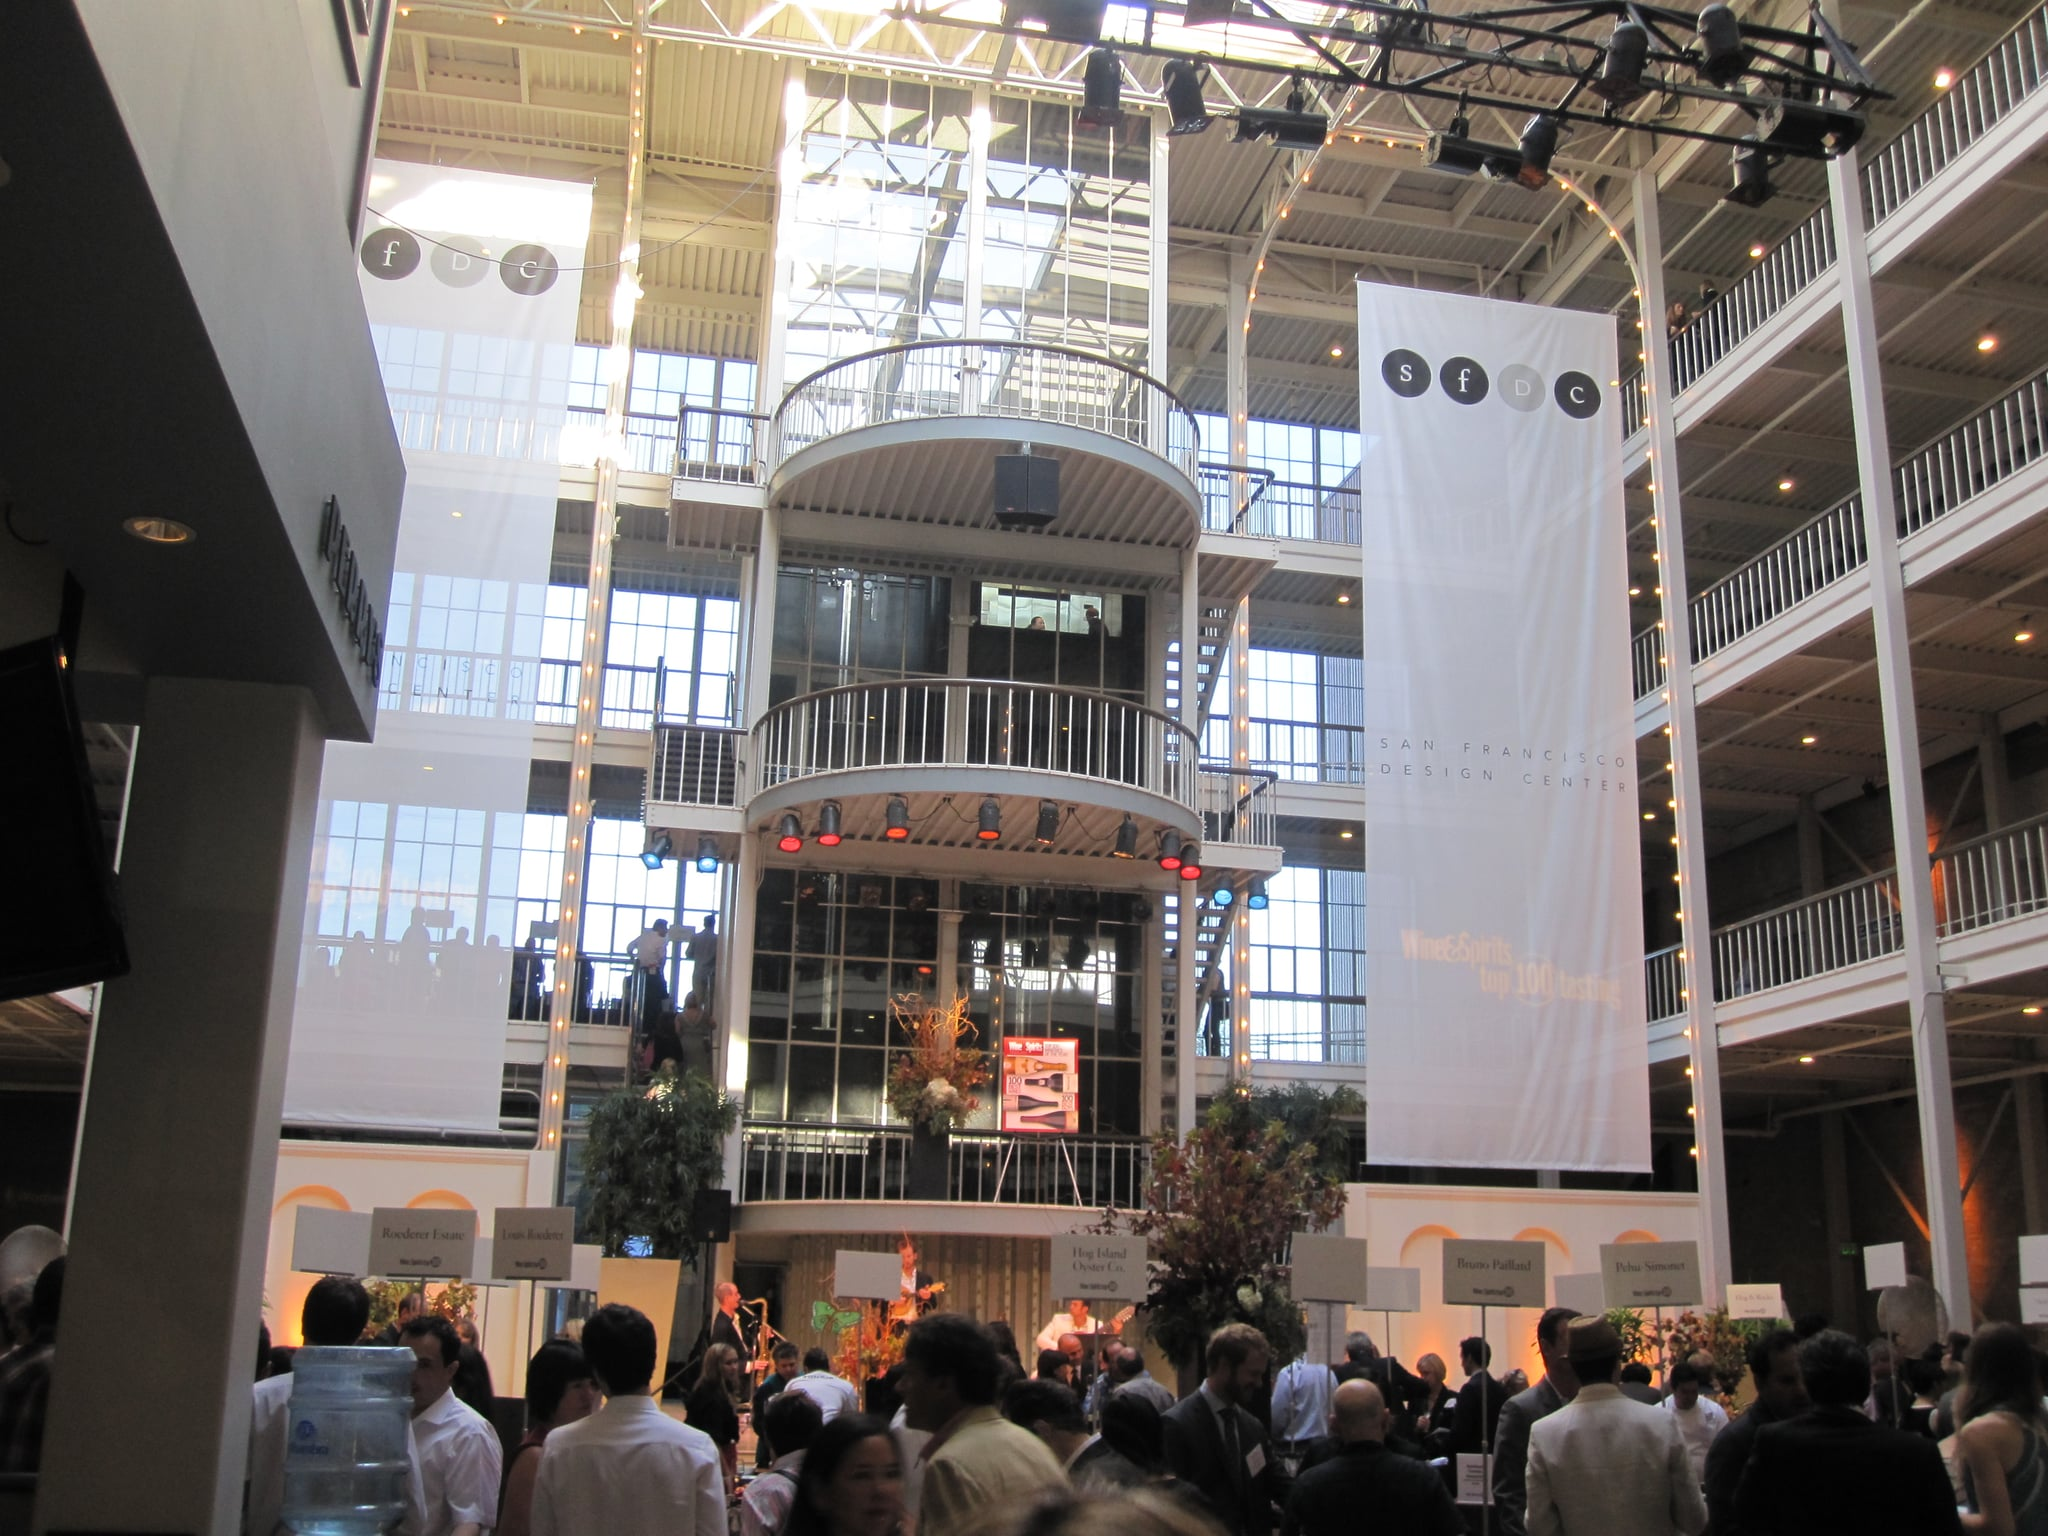 The tasting was hosted at the San Francisco Design Center — oddly enough my high school prom was in the same space.